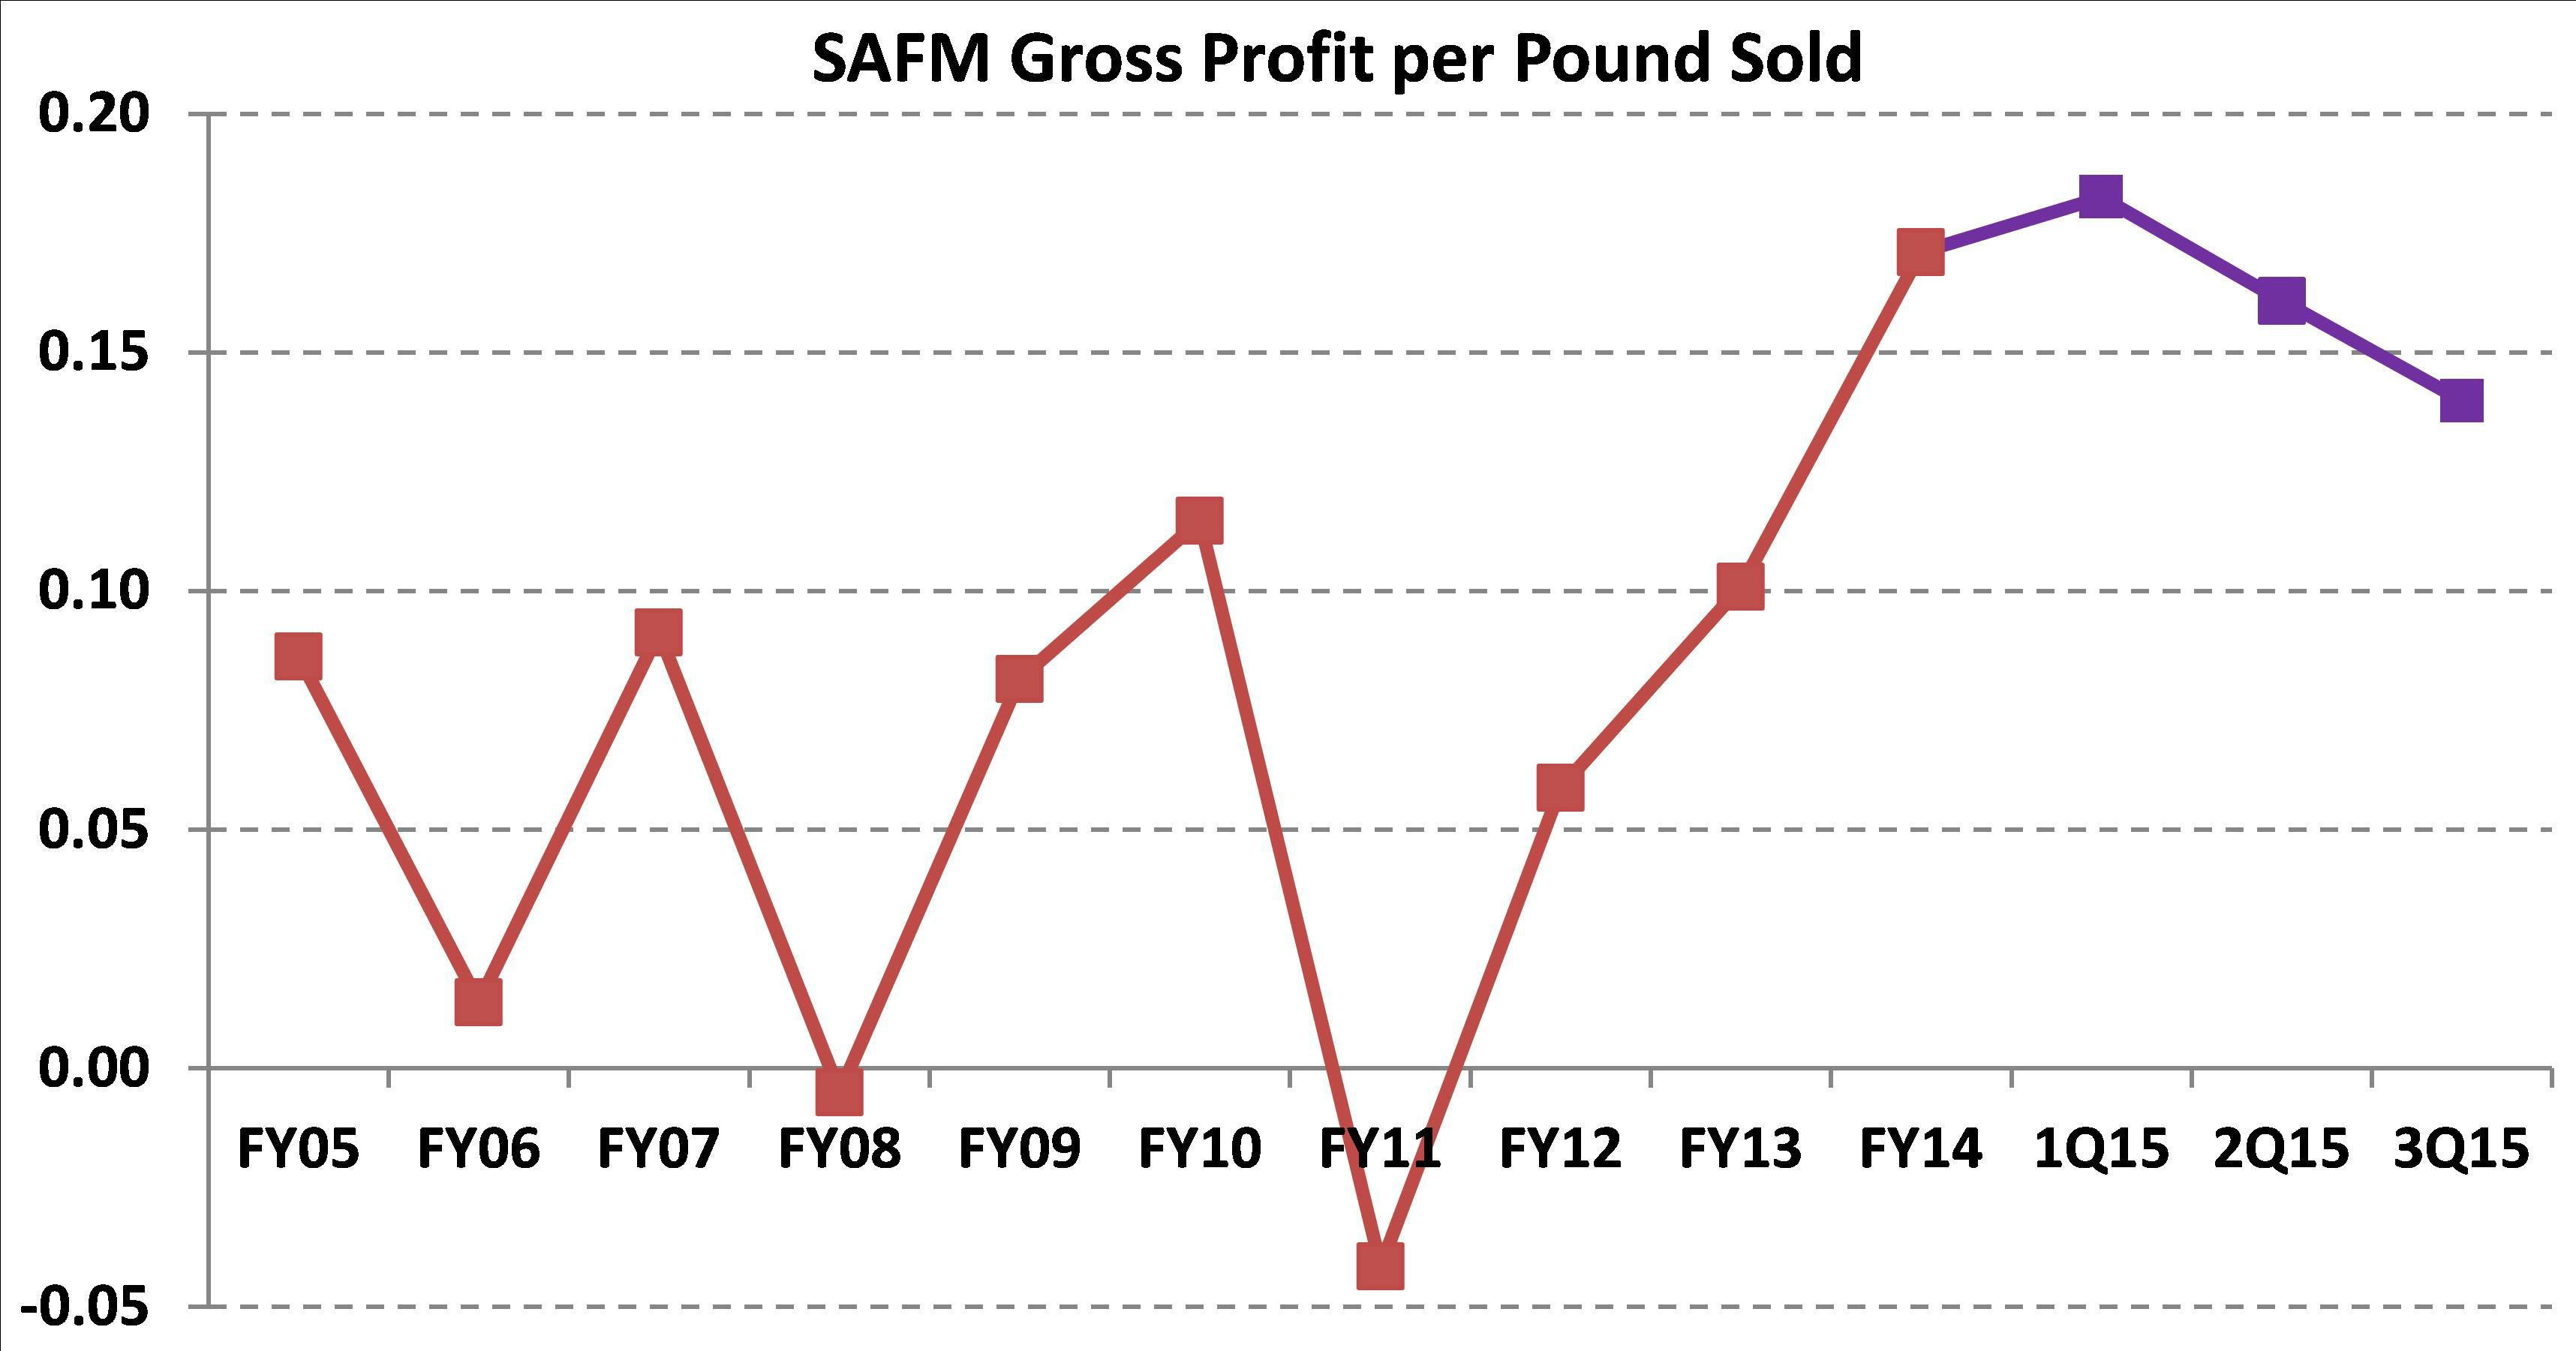 Source SAFM 3Q15 10 Q Ks And Author Calculations